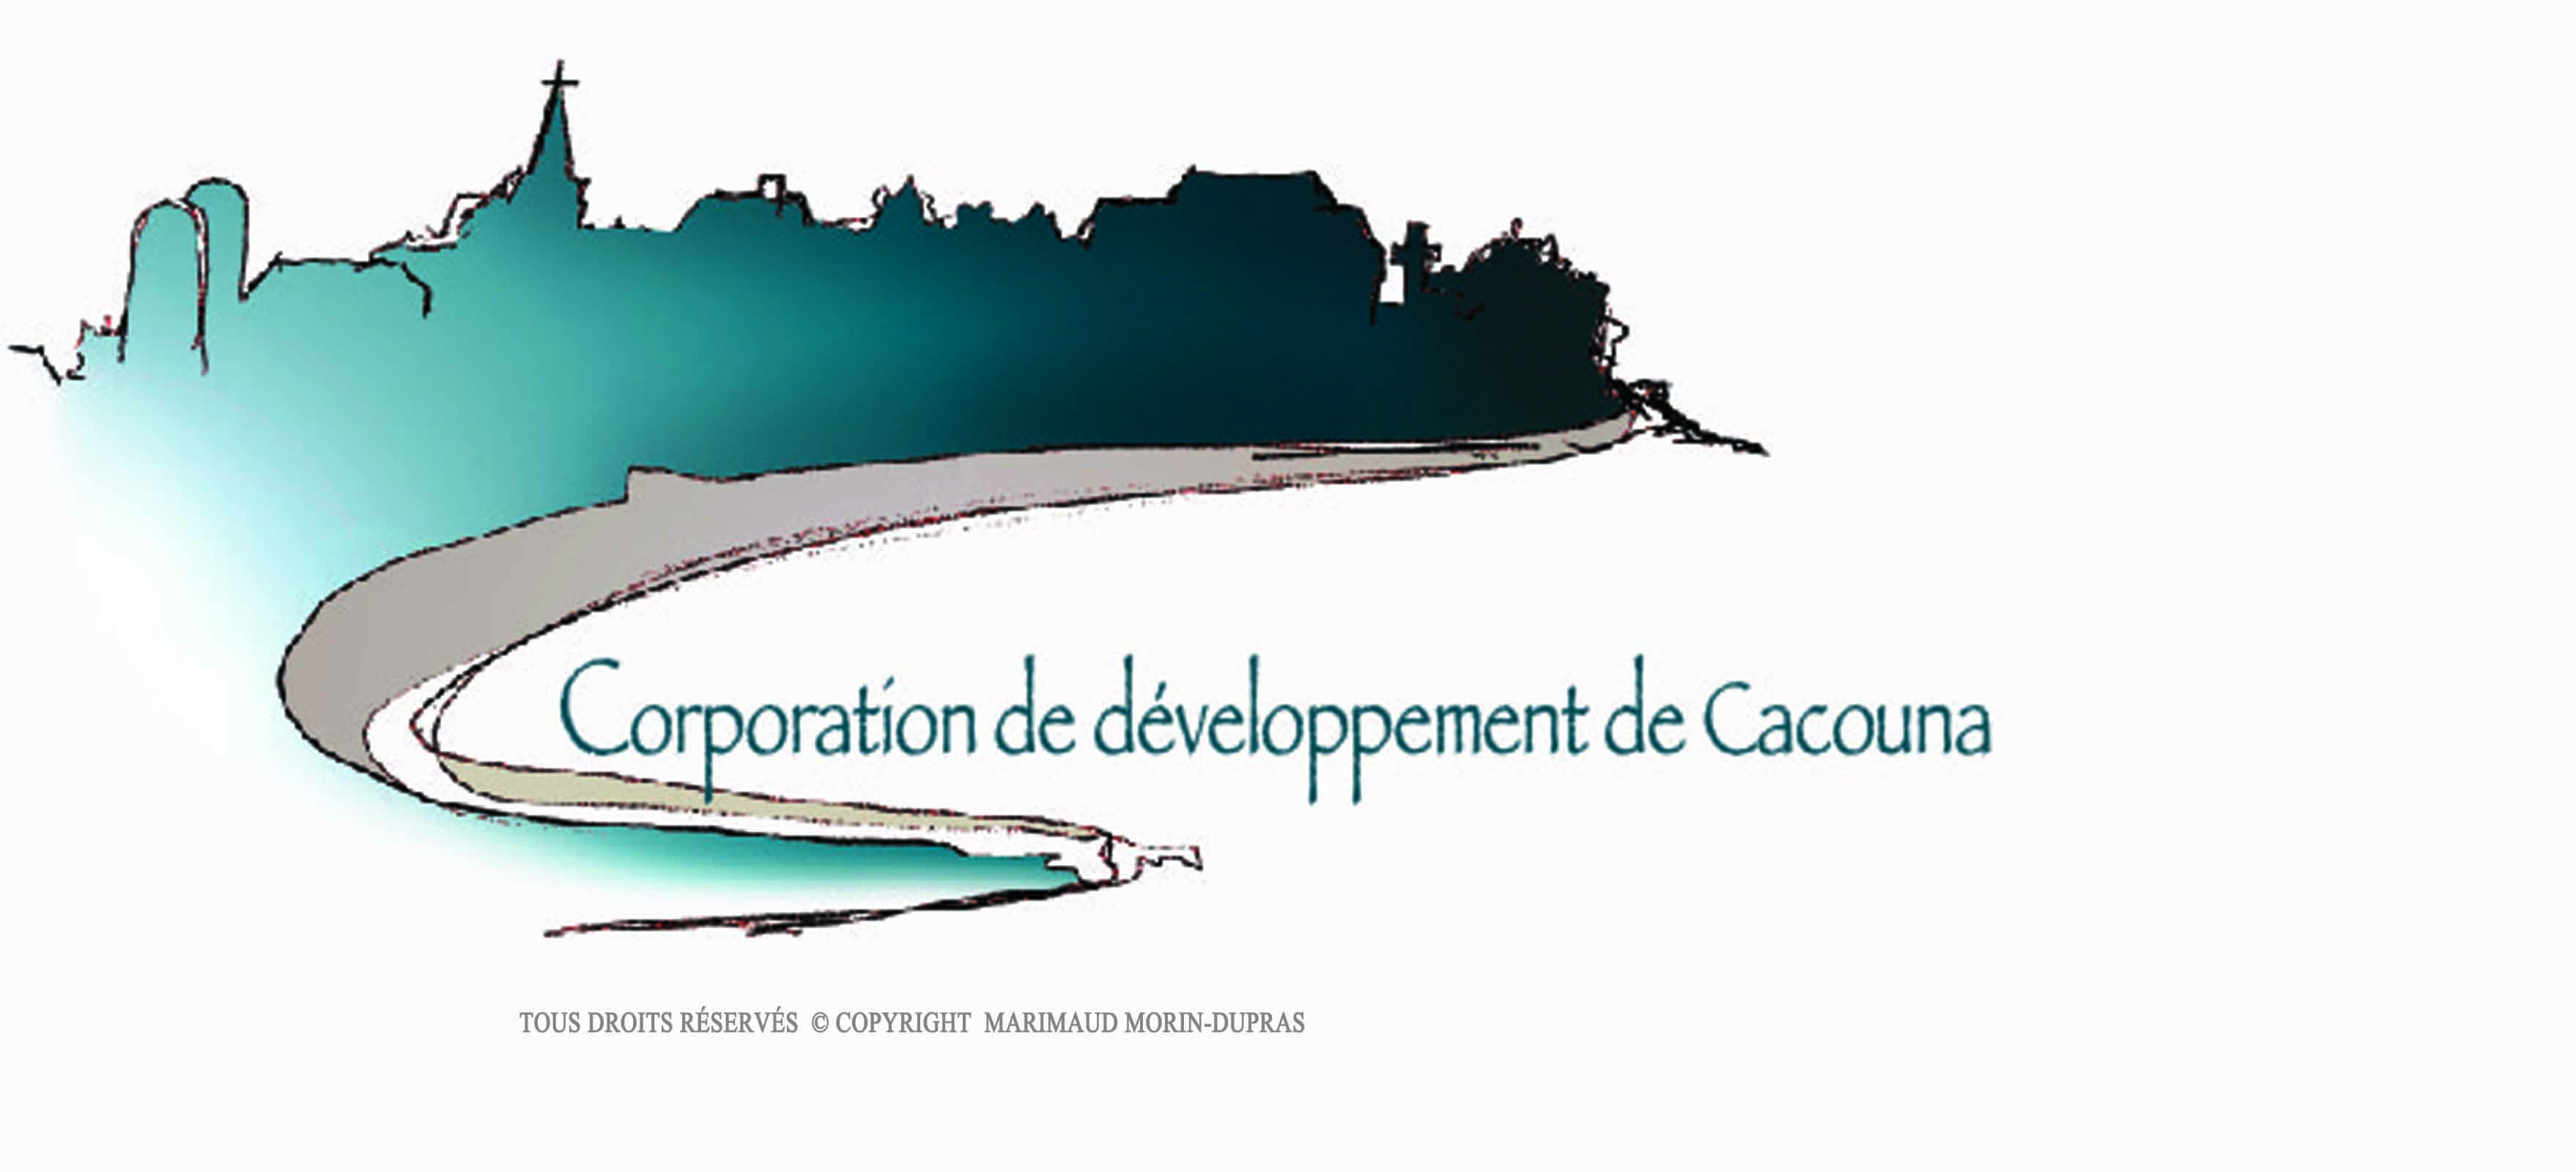 Image corporative, Corporation de développement de Cacouna